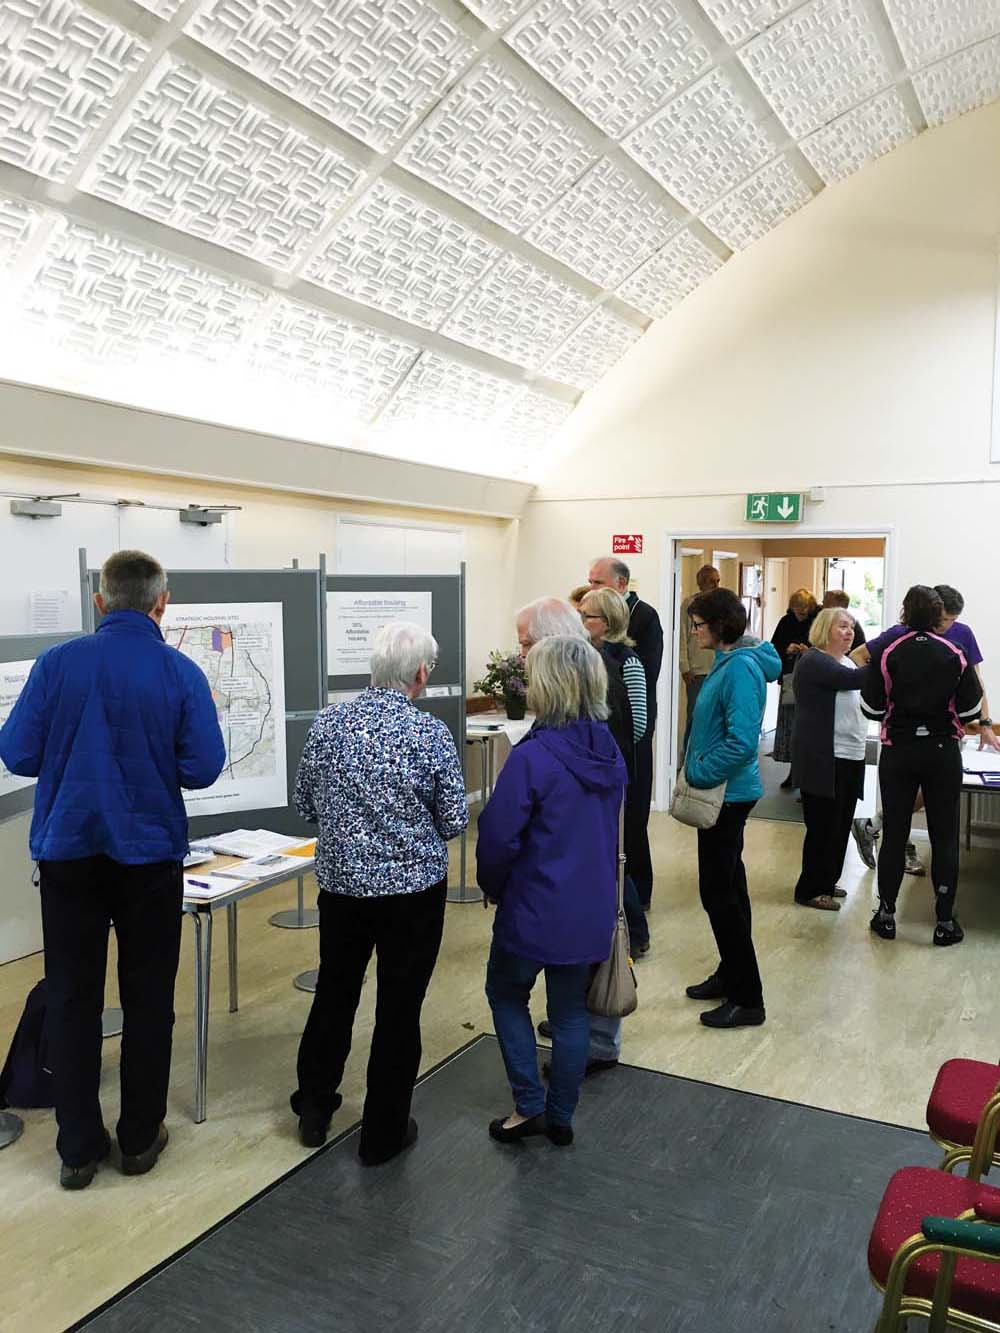 Photograph from the Neighbourhood Plan Exhibition